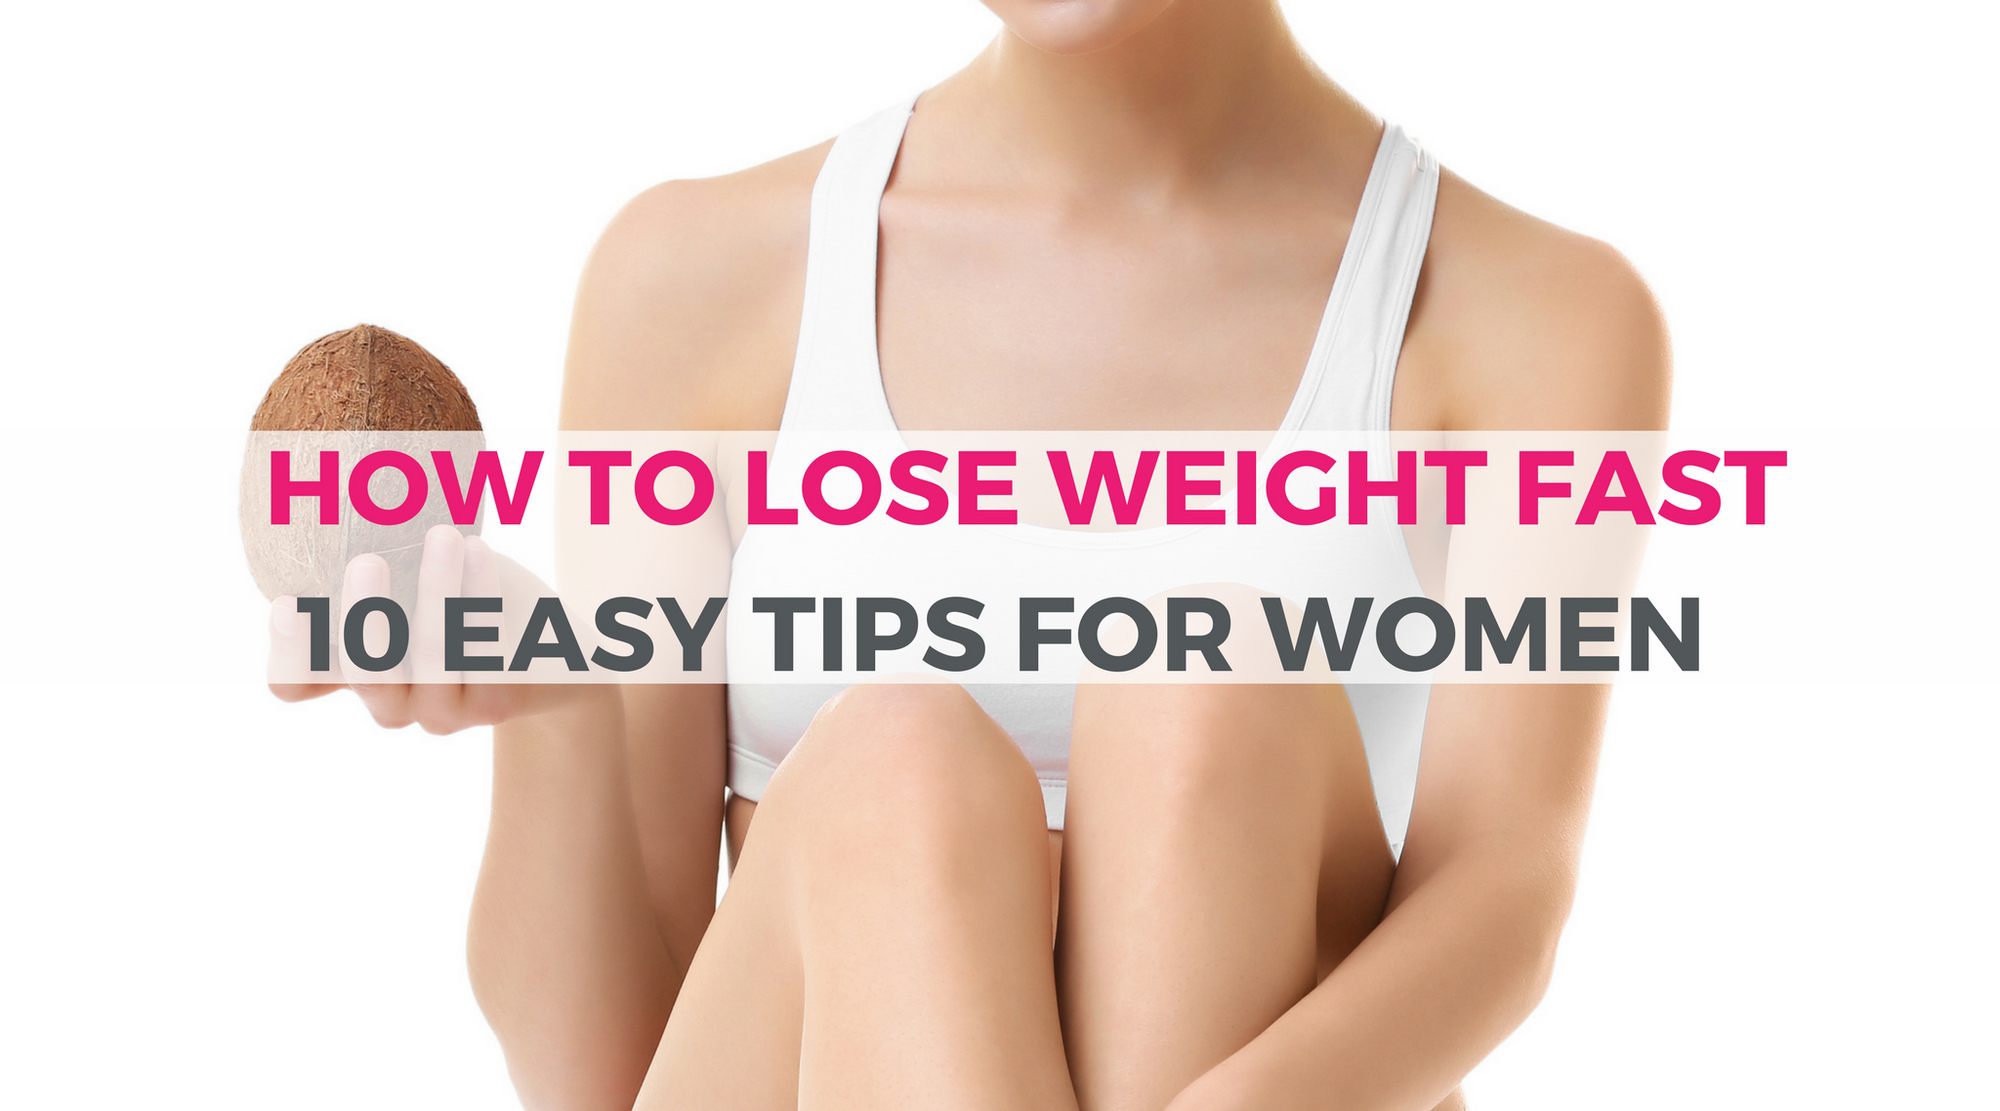 How to Lose Weight Fast In 10 week: 100 Easy Tips for Women - SHEFIT